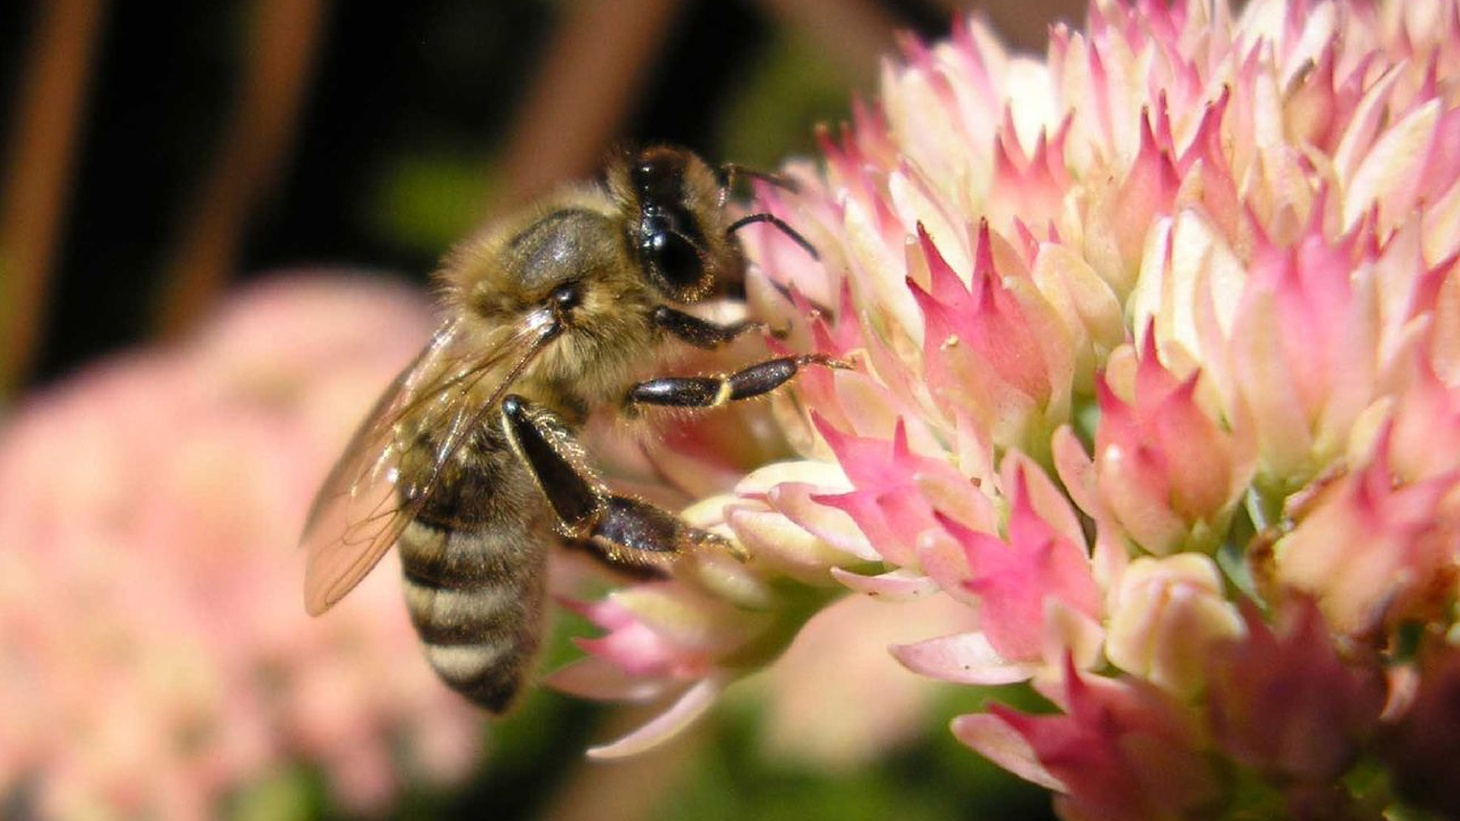 Where have all the honeybees gone? A sudden spike in the death of honeybees across the nation is alarming beekeepers, farmers and environmentalists, but they can't agree what's causing it.